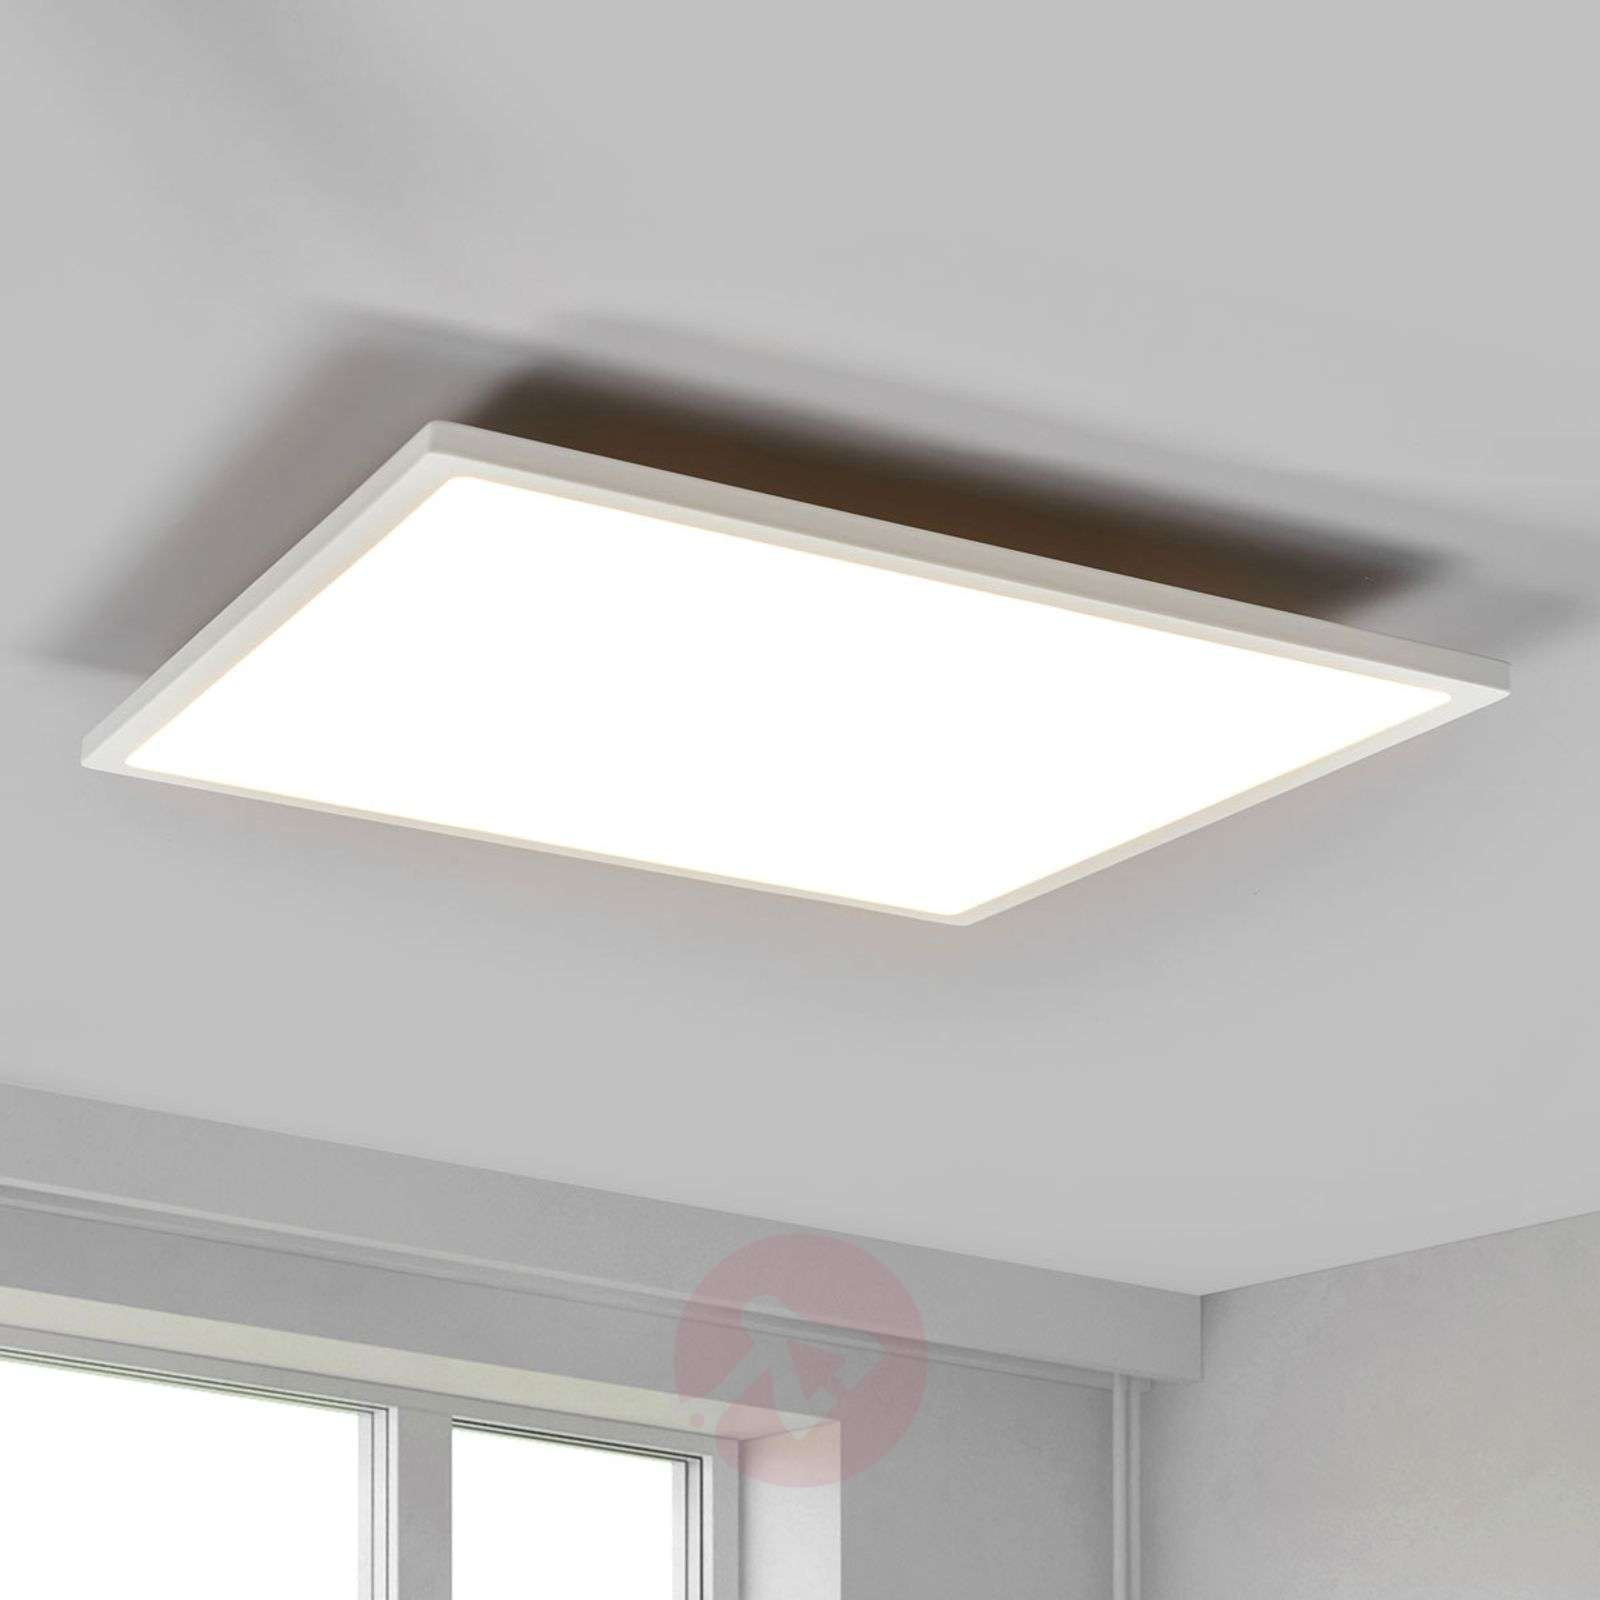 LED Ceiling Lamp Ceres White With Easydim Function 1509147 03